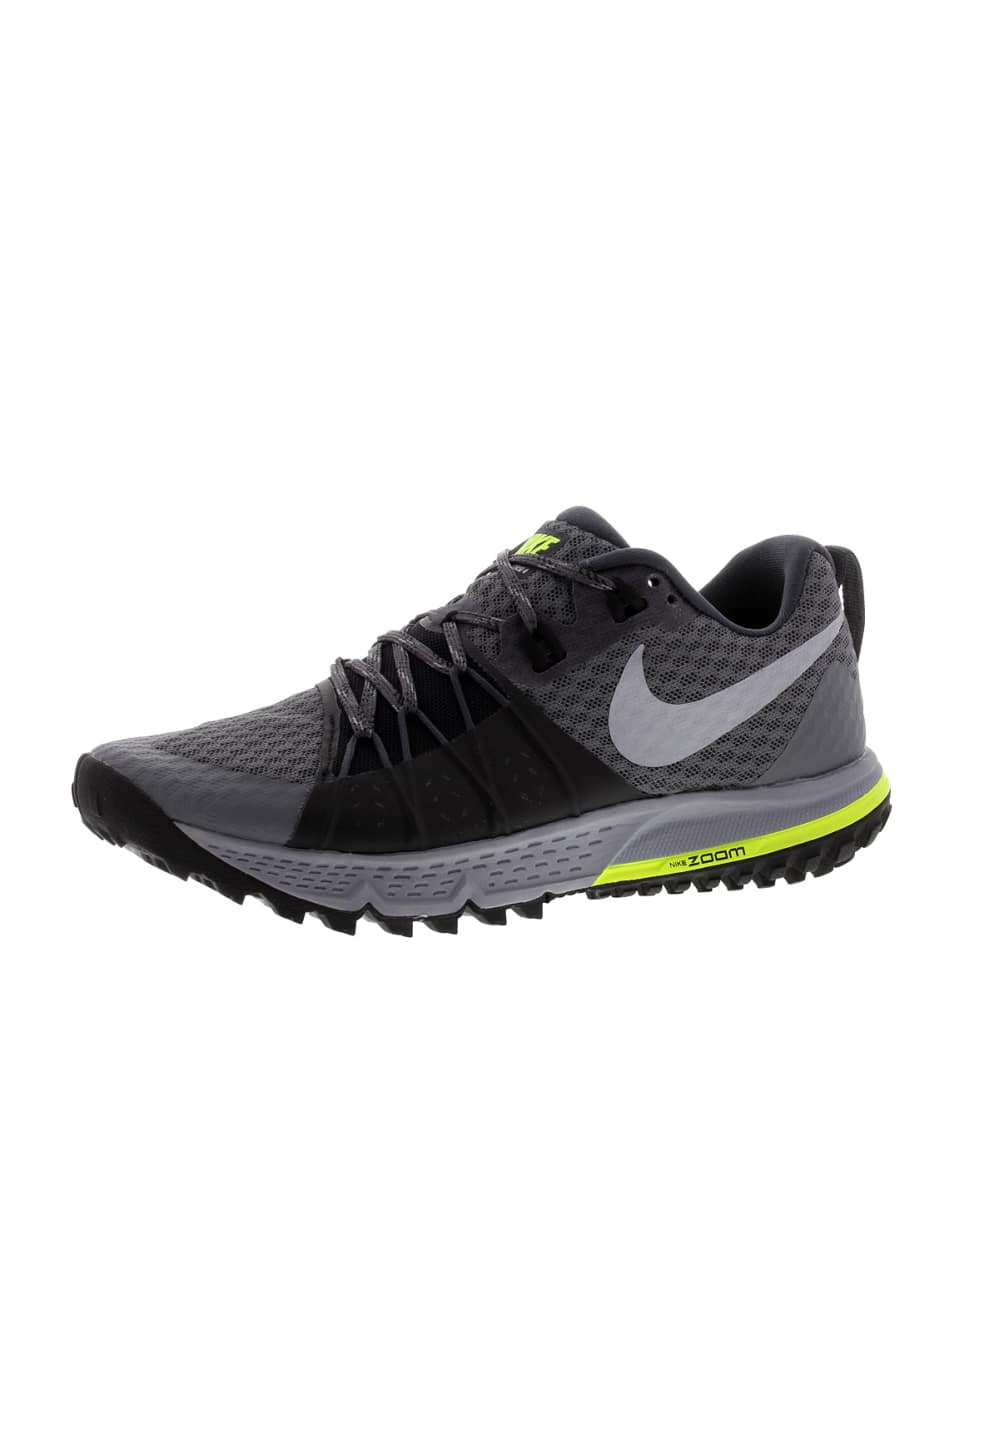 fb0f20828541 Next. -50%. This product is currently out of stock. Nike. Air Zoom  Wildhorse 4 - Running shoes for Women